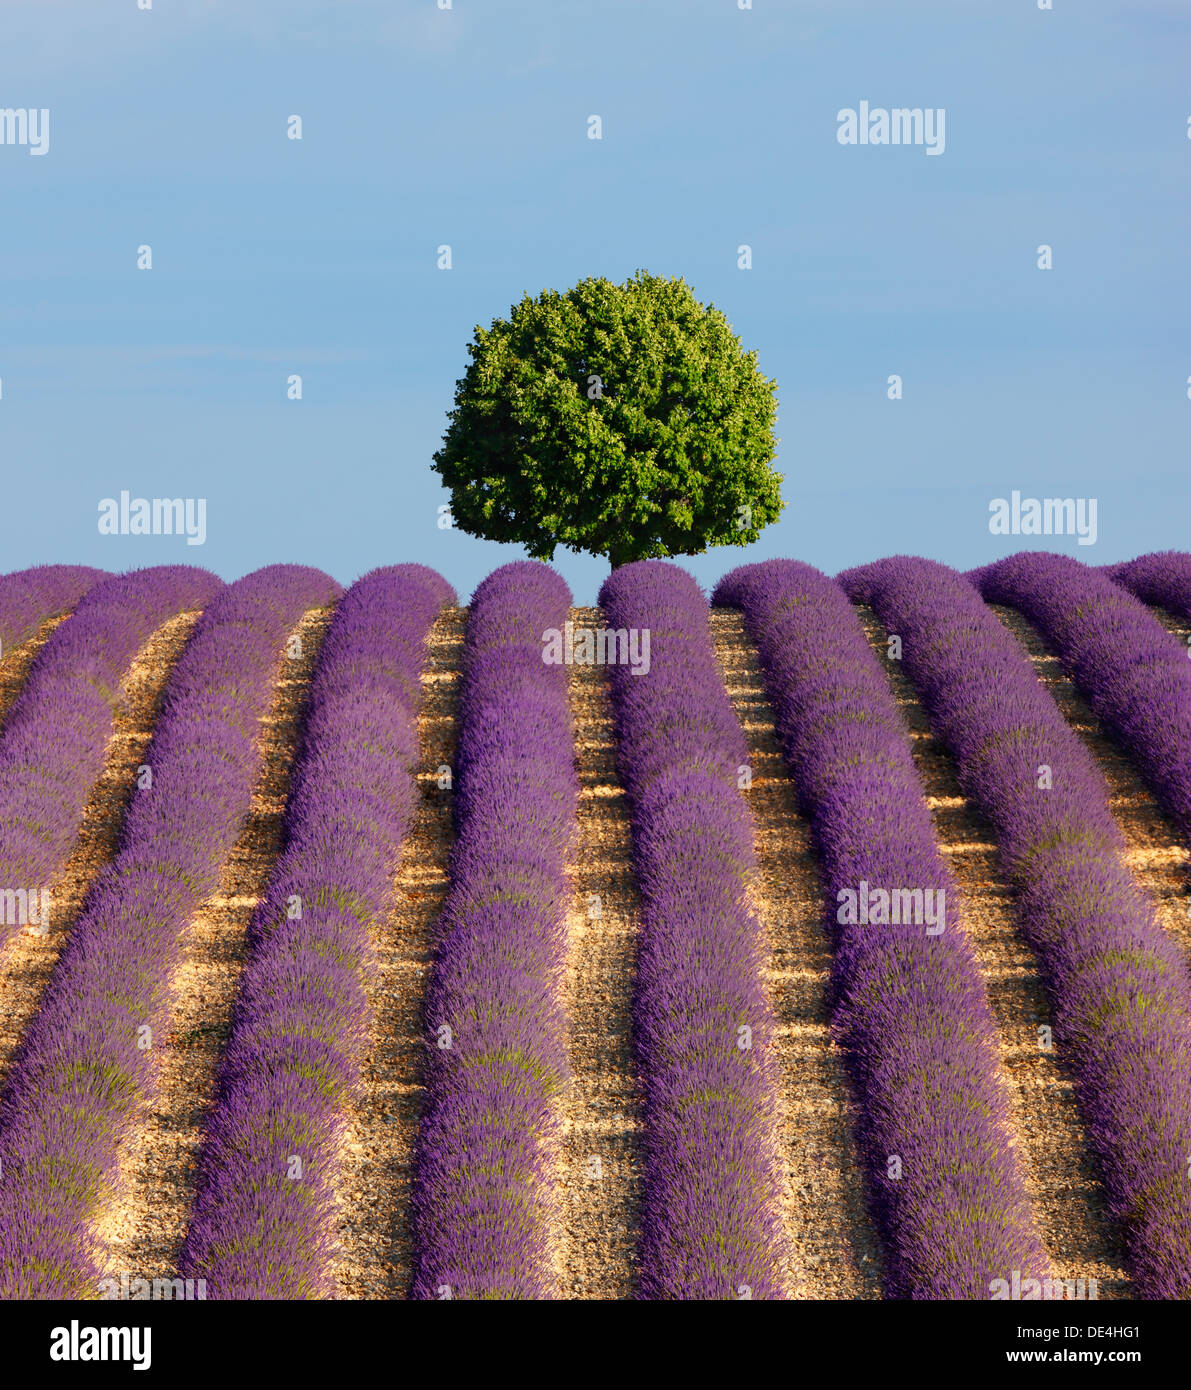 Tree on the top of the hill in lavender field. - Stock Image